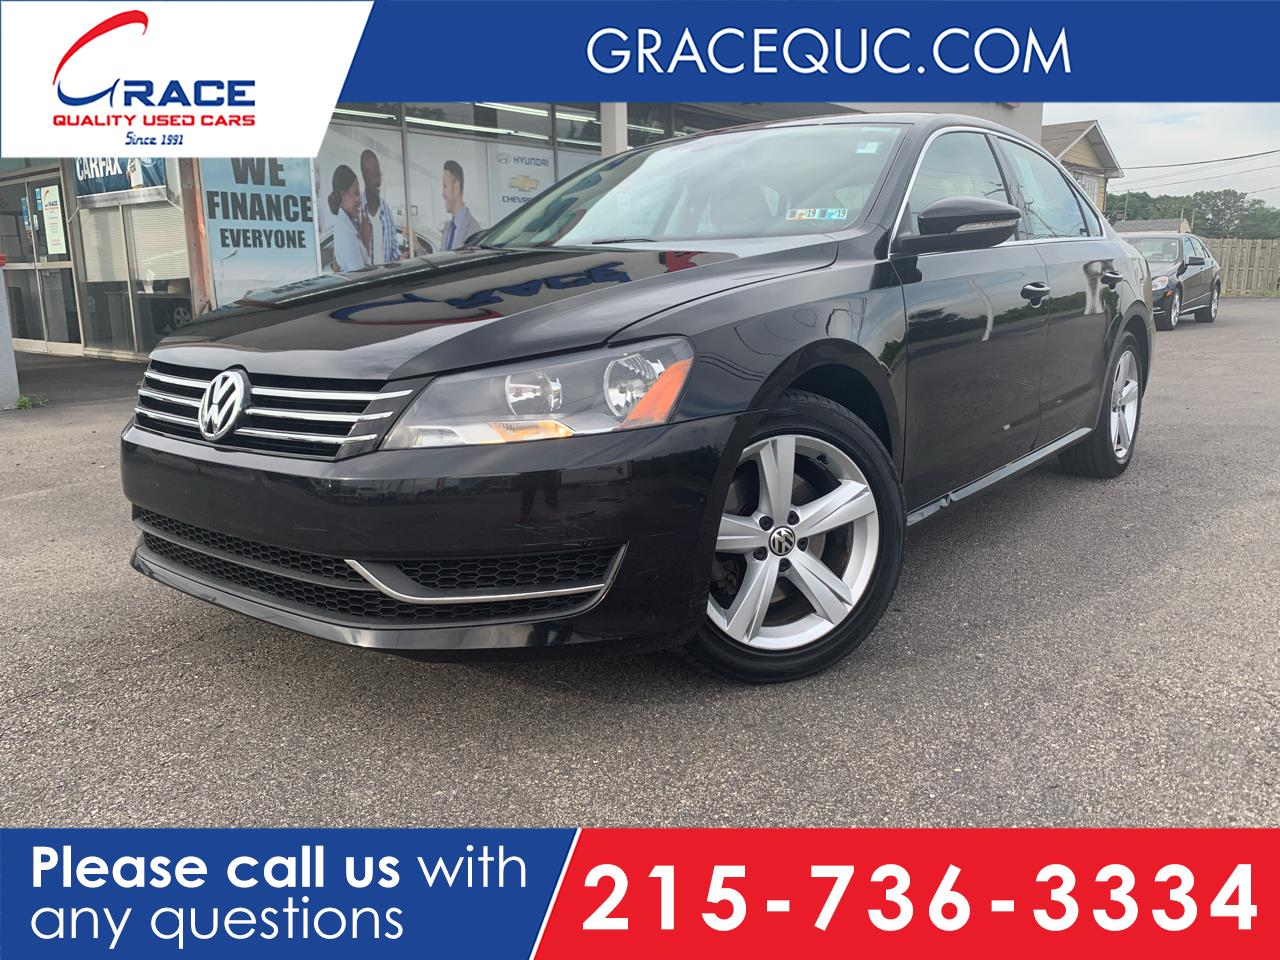 Grace Quality Cars >> Used Cars For Sale Morrisville Pa 19067 Grace Quality Used Cars